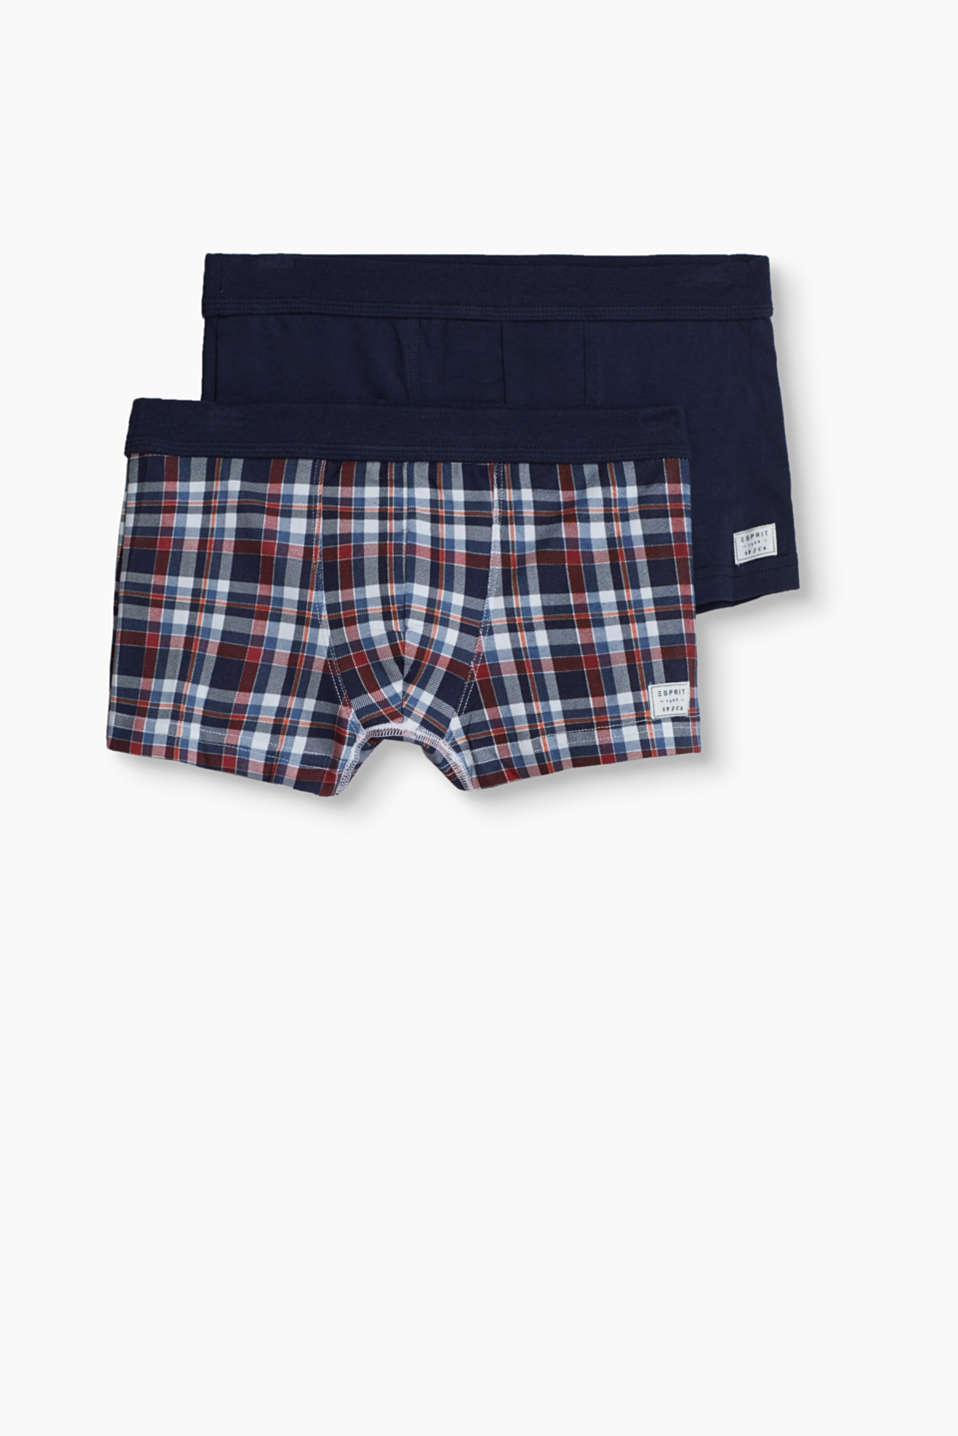 Plain or checked: Either way, this double pack of hipster shorts is super comfortable